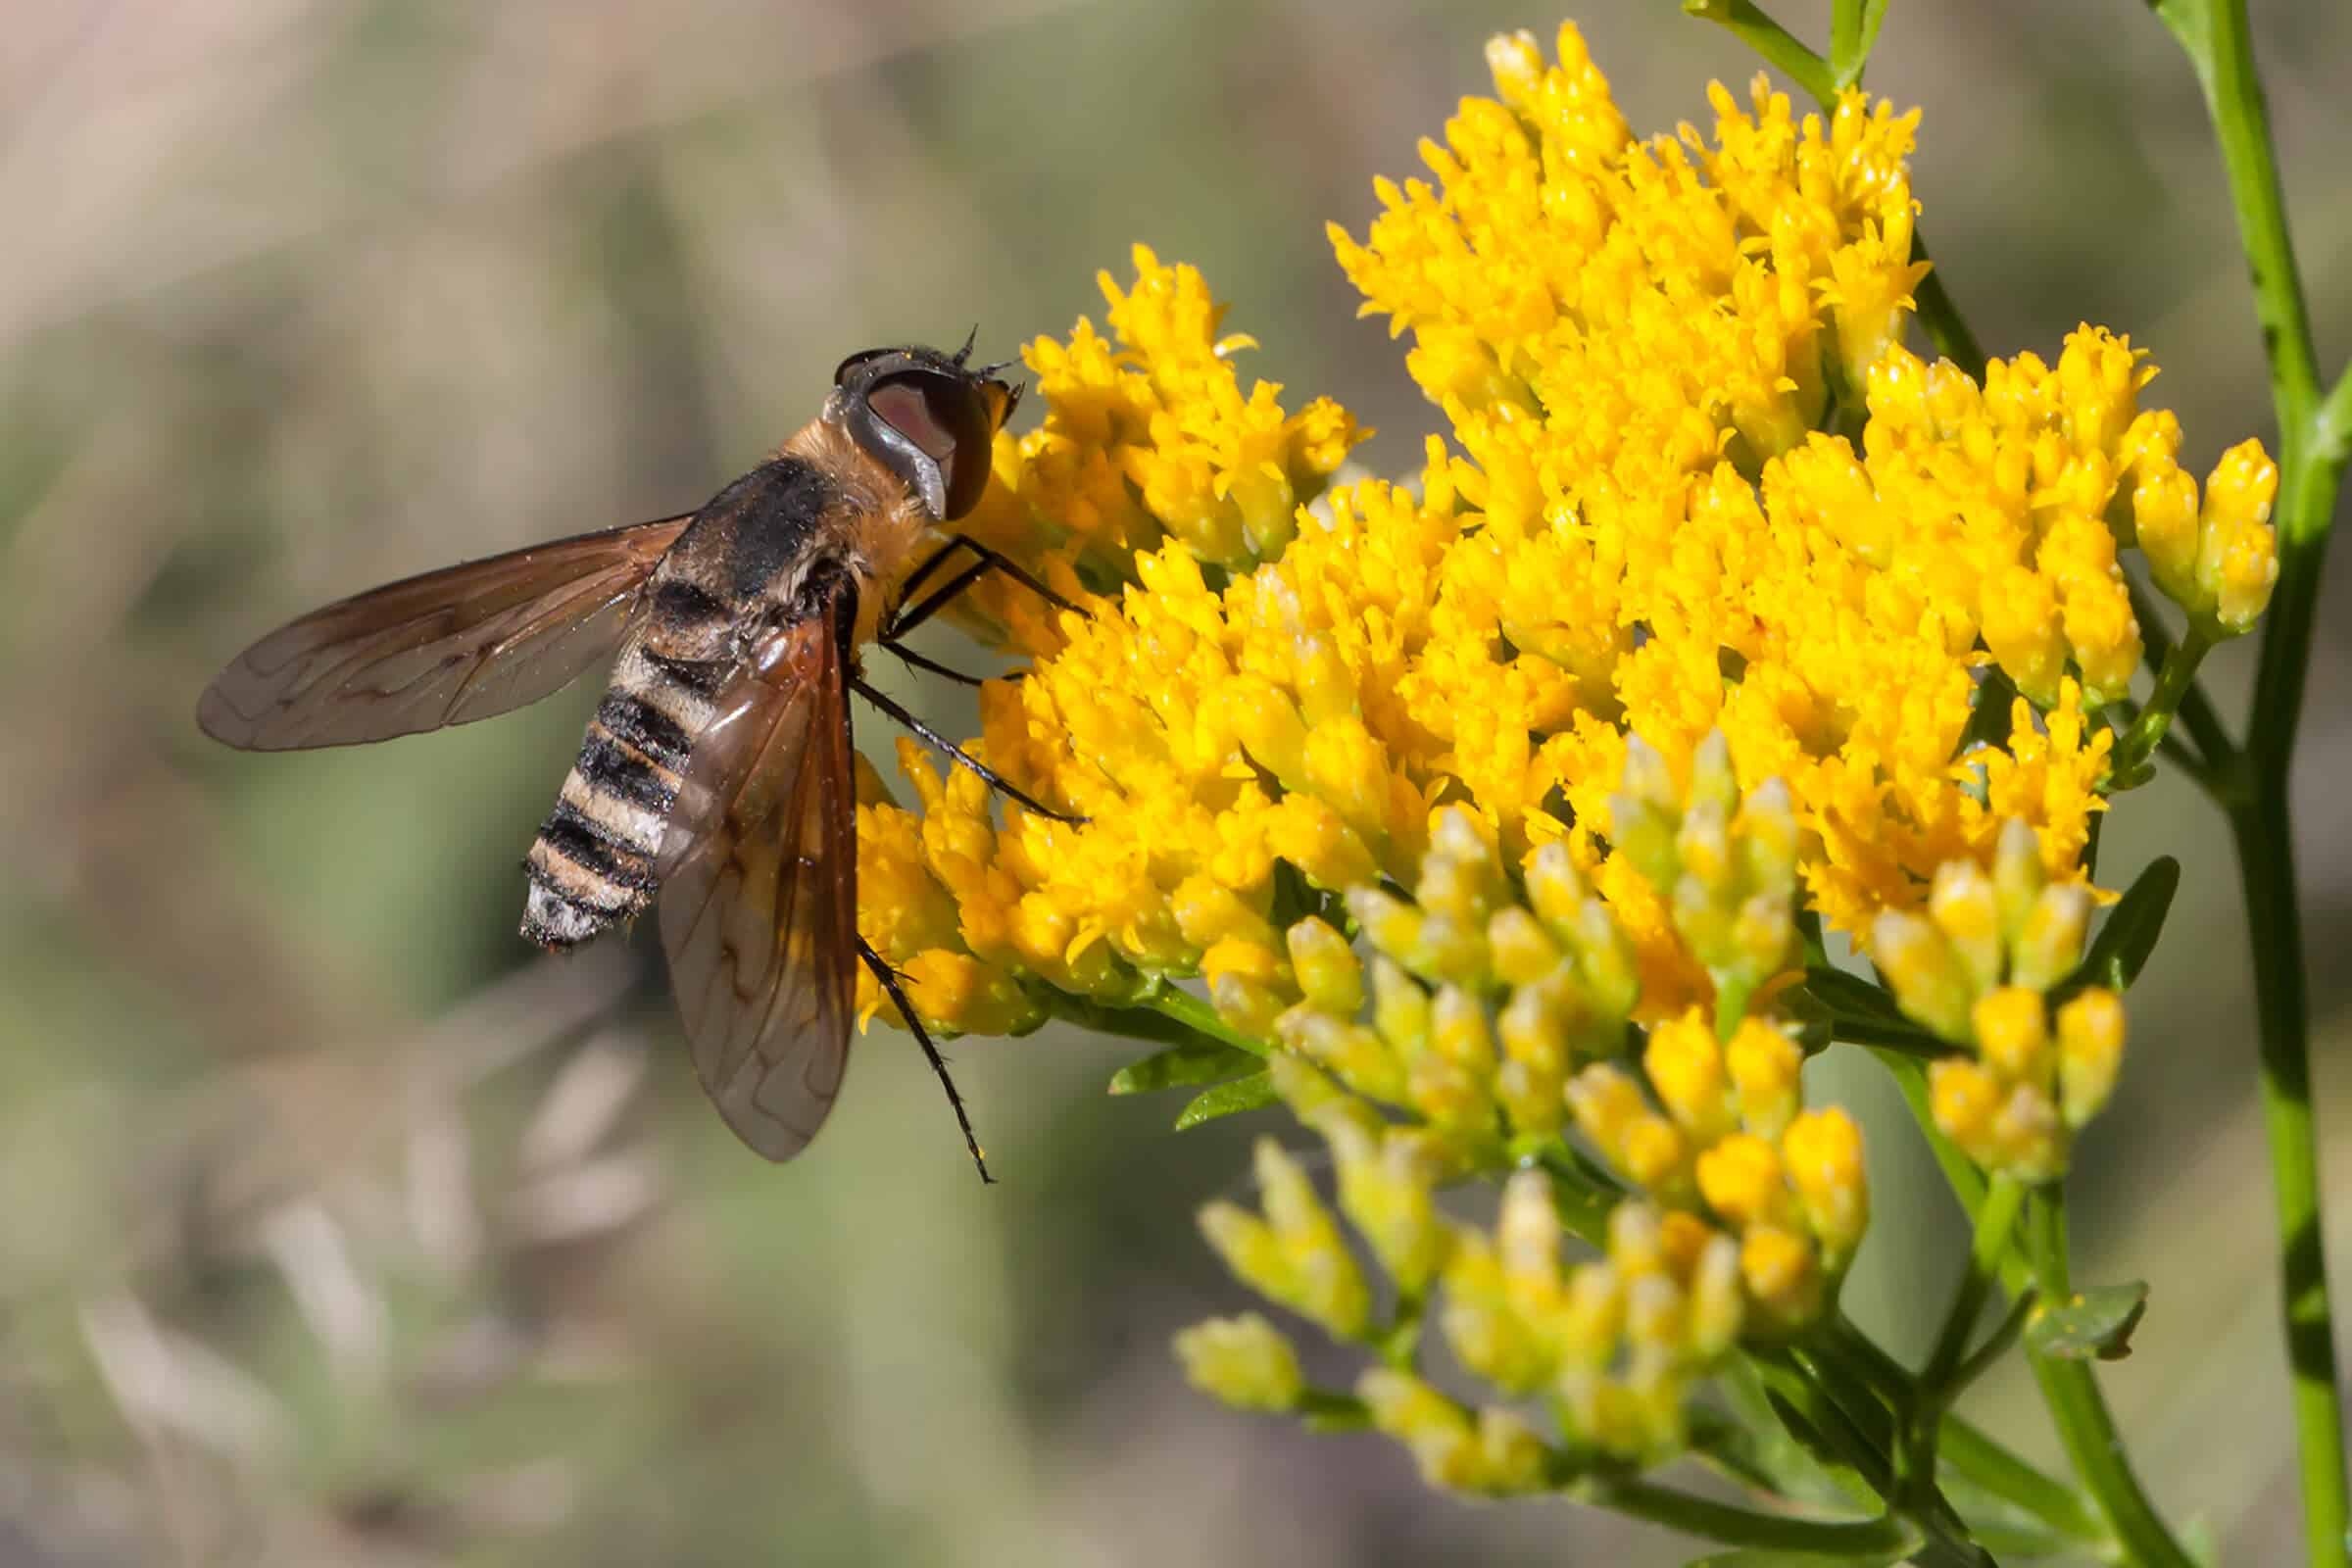 orange, black and white striped bee fly on yellow flowers